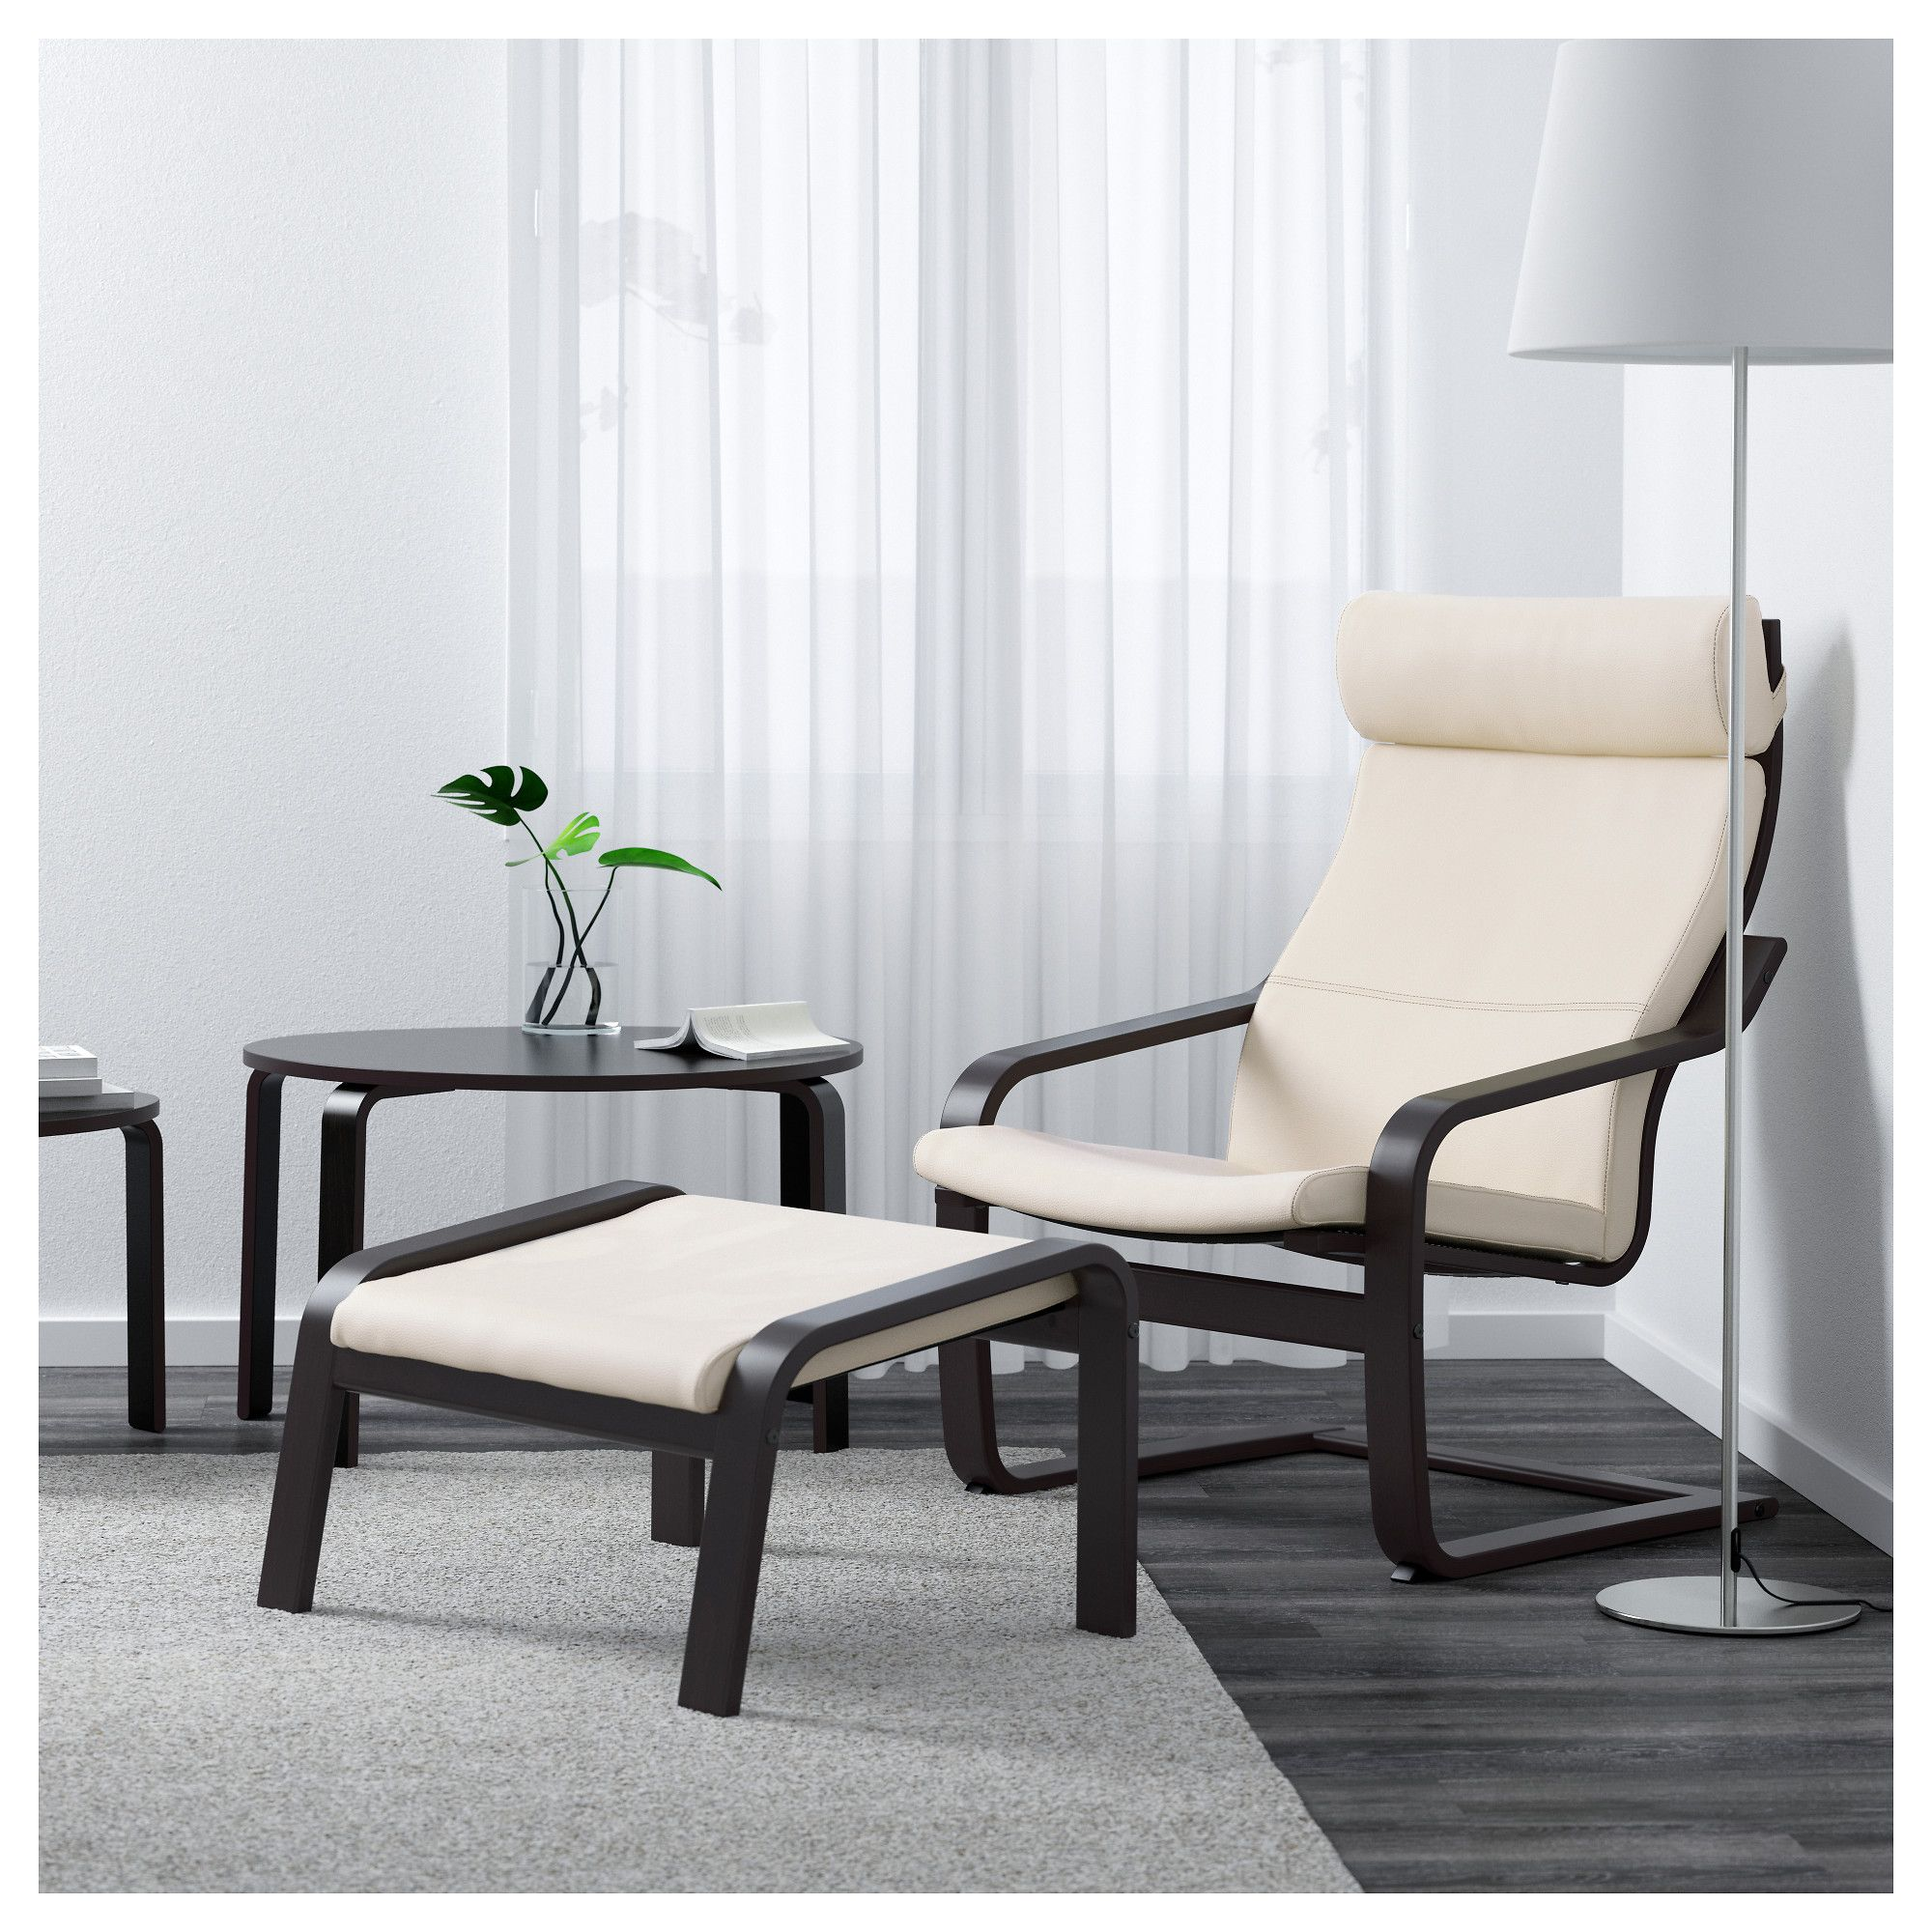 Marvelous Ikea Poang Armchair Black Brown Glose Robust Off White Ocoug Best Dining Table And Chair Ideas Images Ocougorg